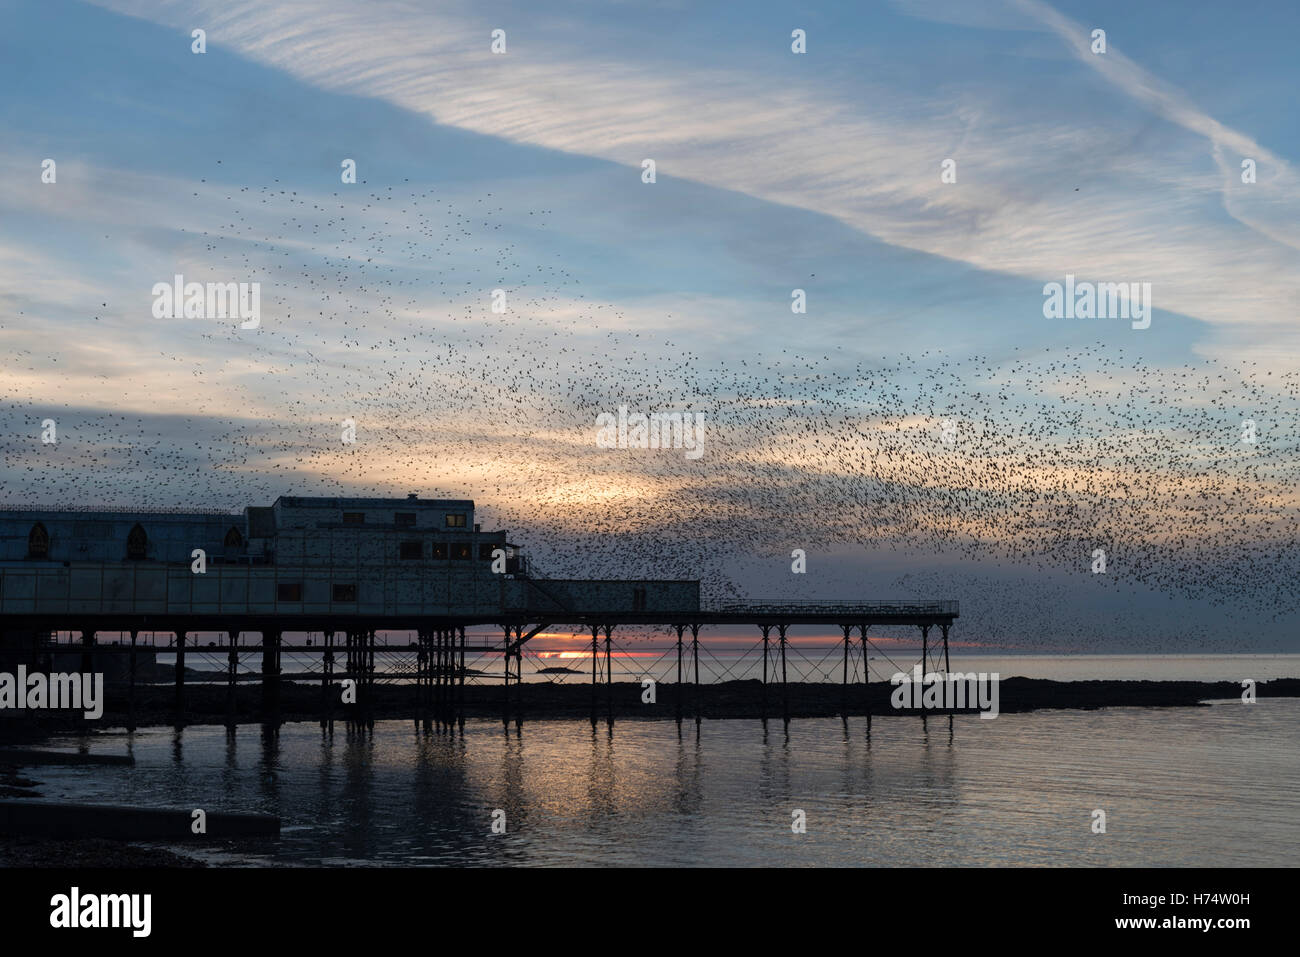 A murmuration of starlings flock over the Victorian Pier dating back to 1865. - Stock Image